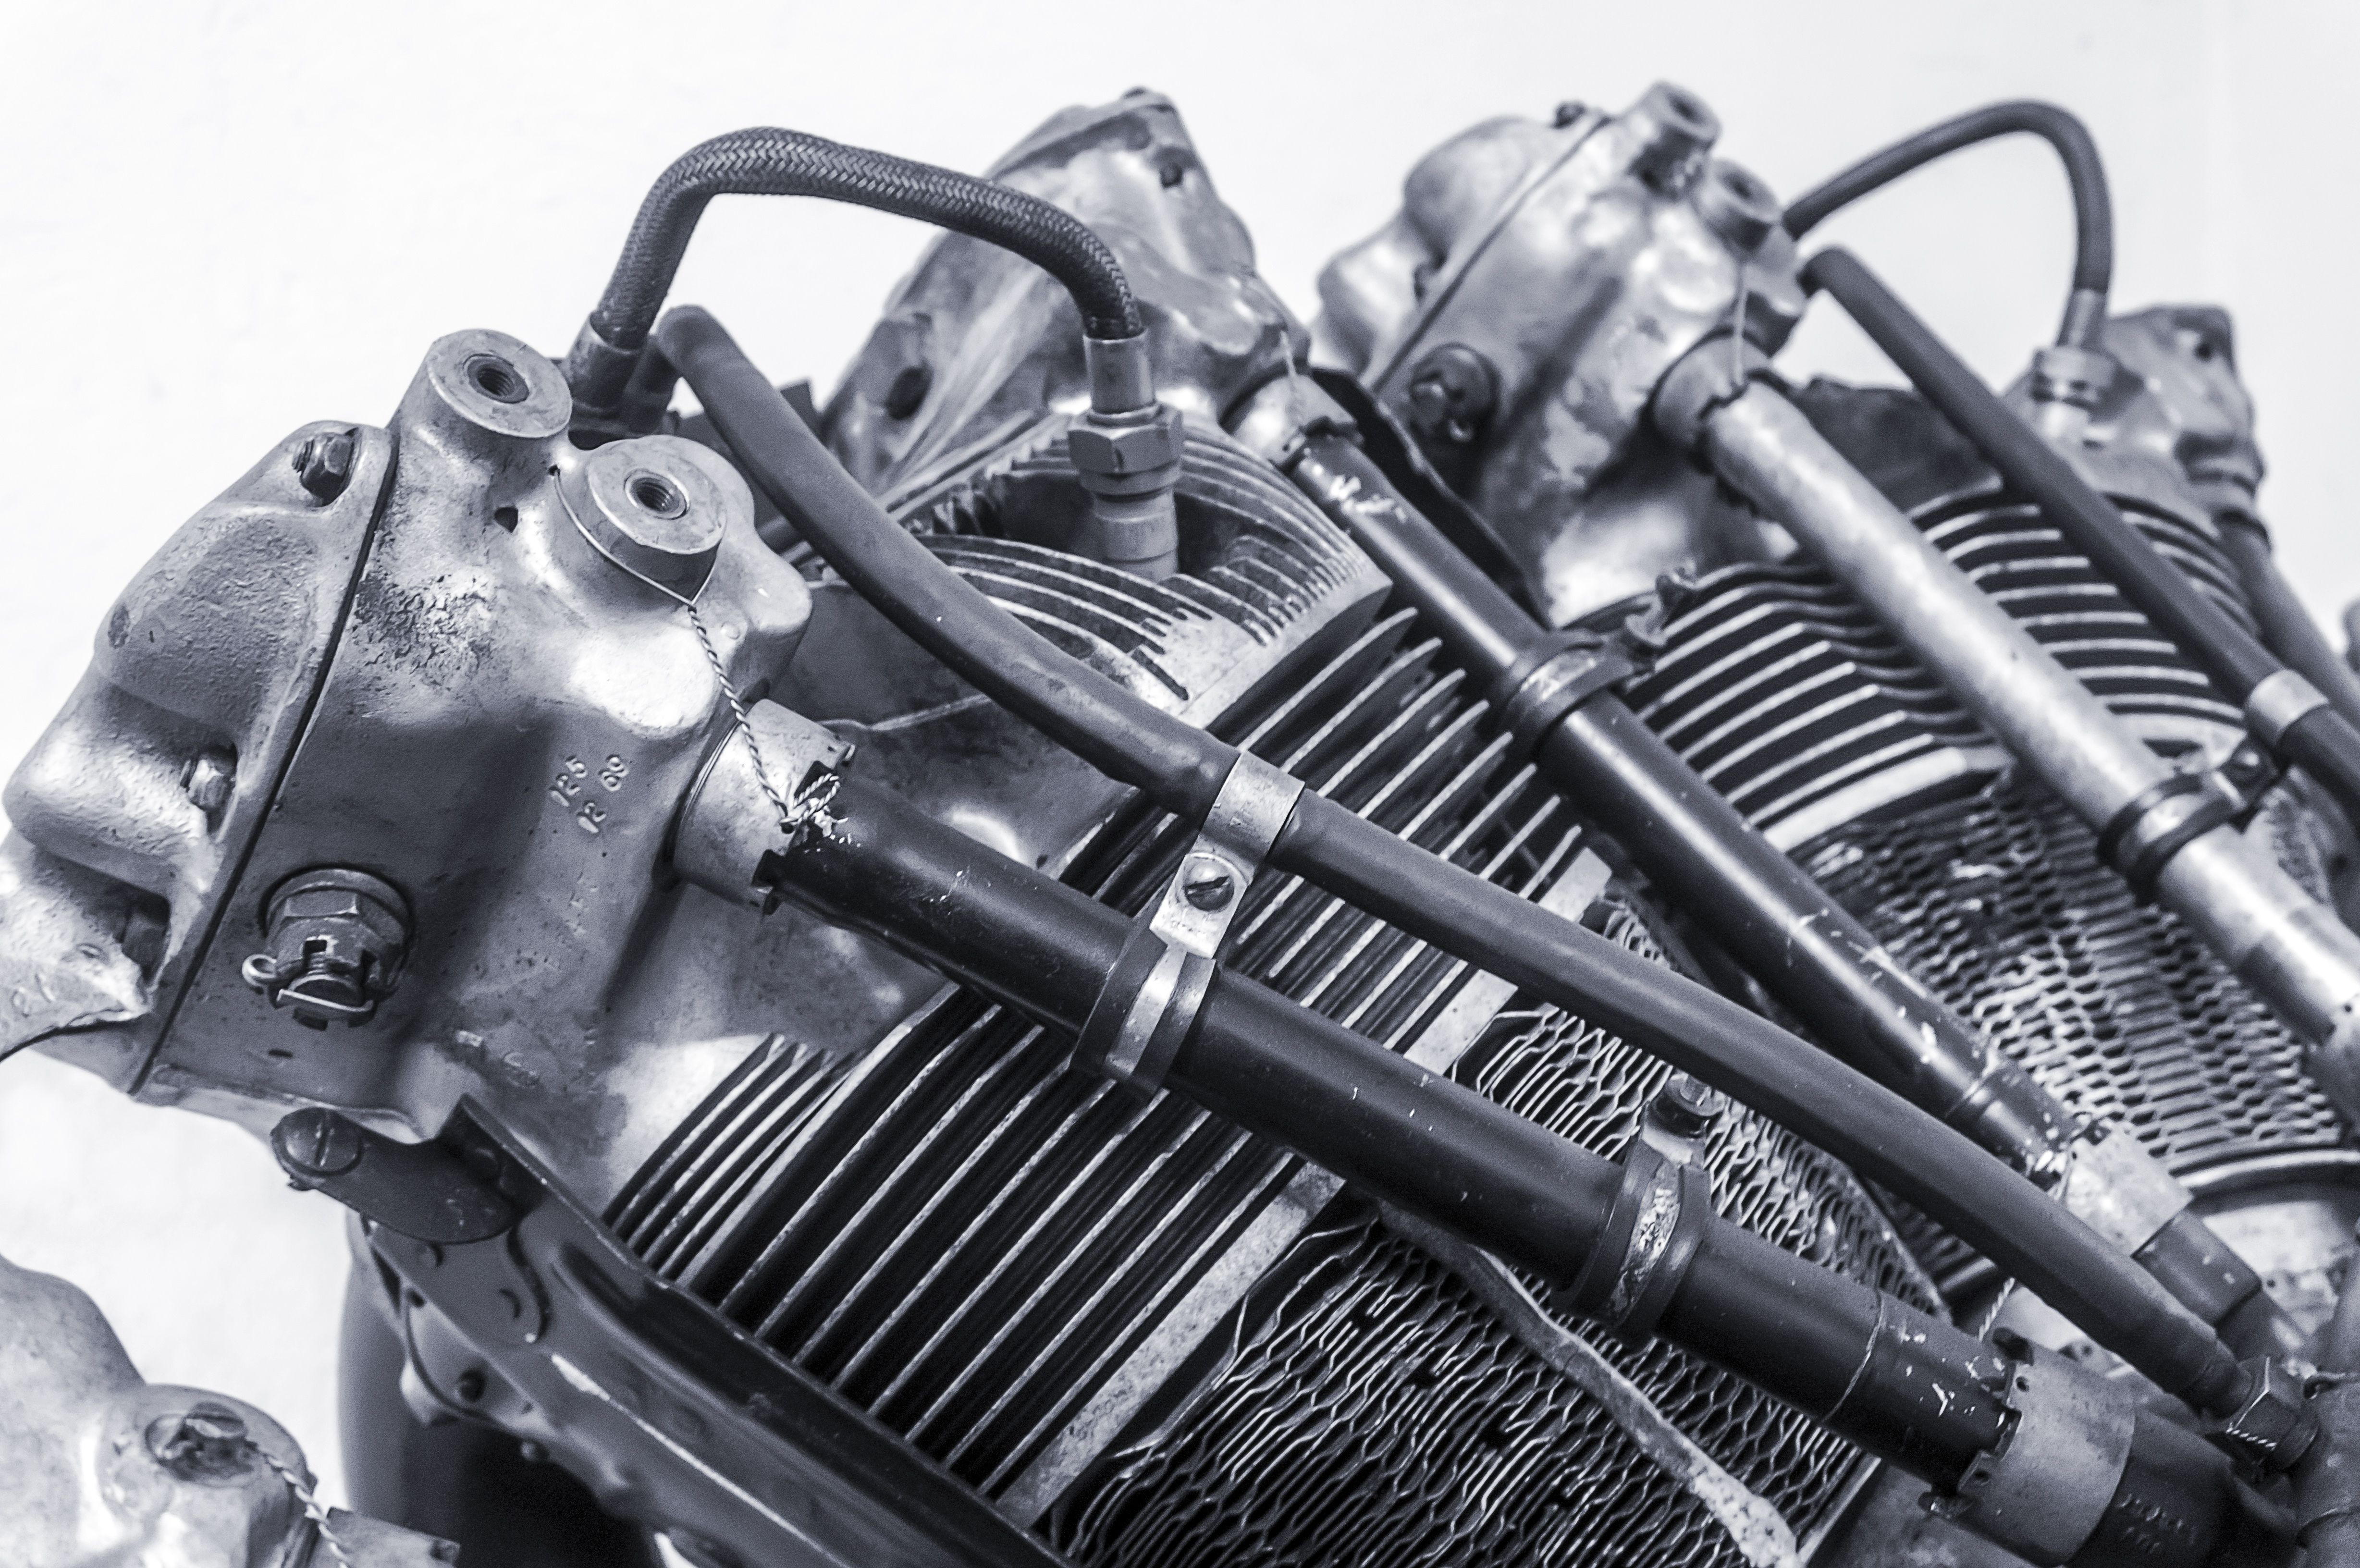 How Does A Motorcycle Engine Work Diagram the Basics Of Motorcycle Engine Rebuilding Of How Does A Motorcycle Engine Work Diagram